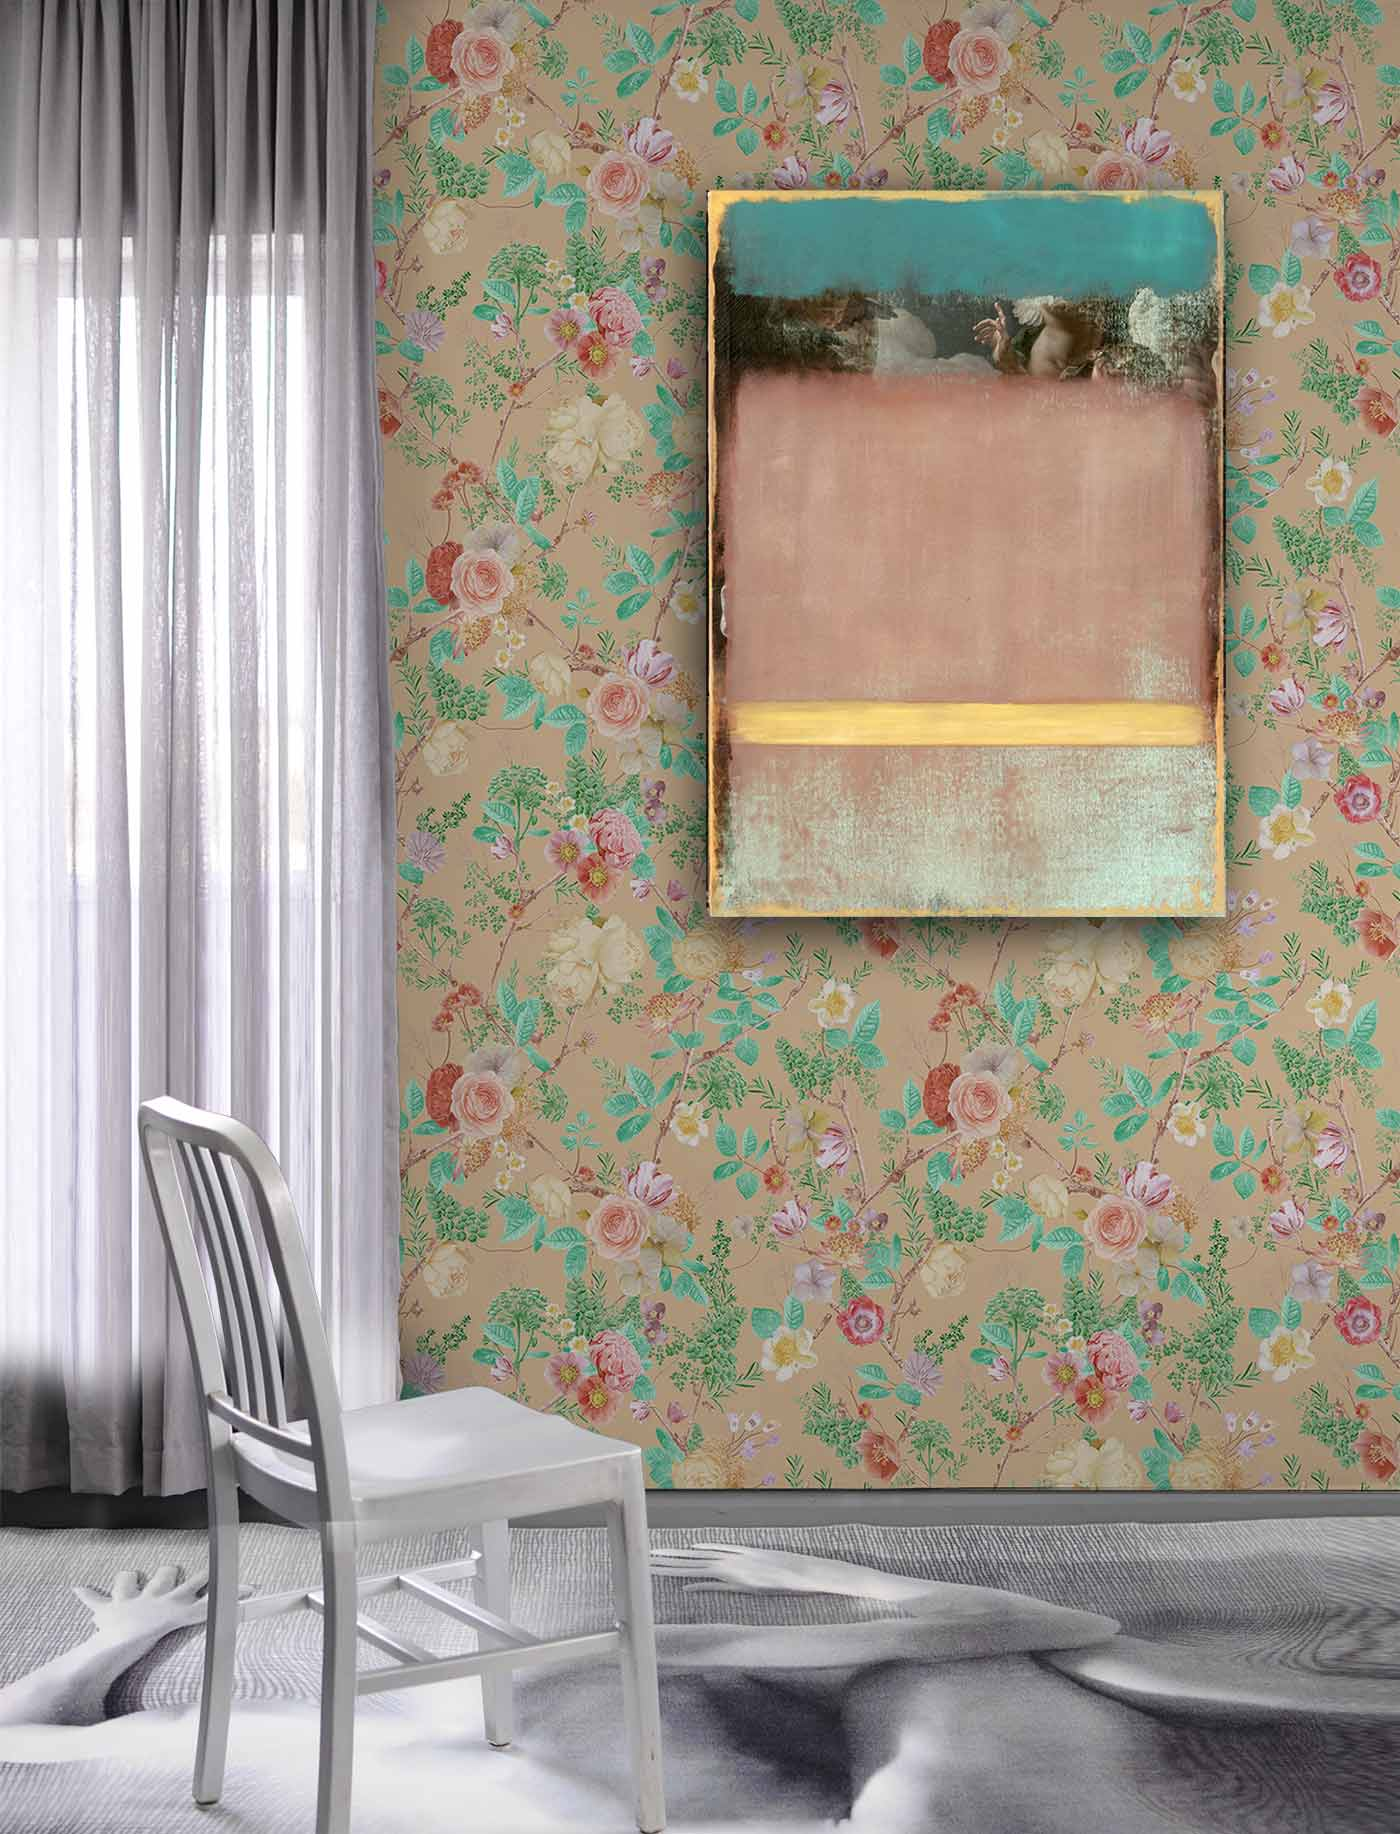 Floral Spring Peach and Orange Wallpaper